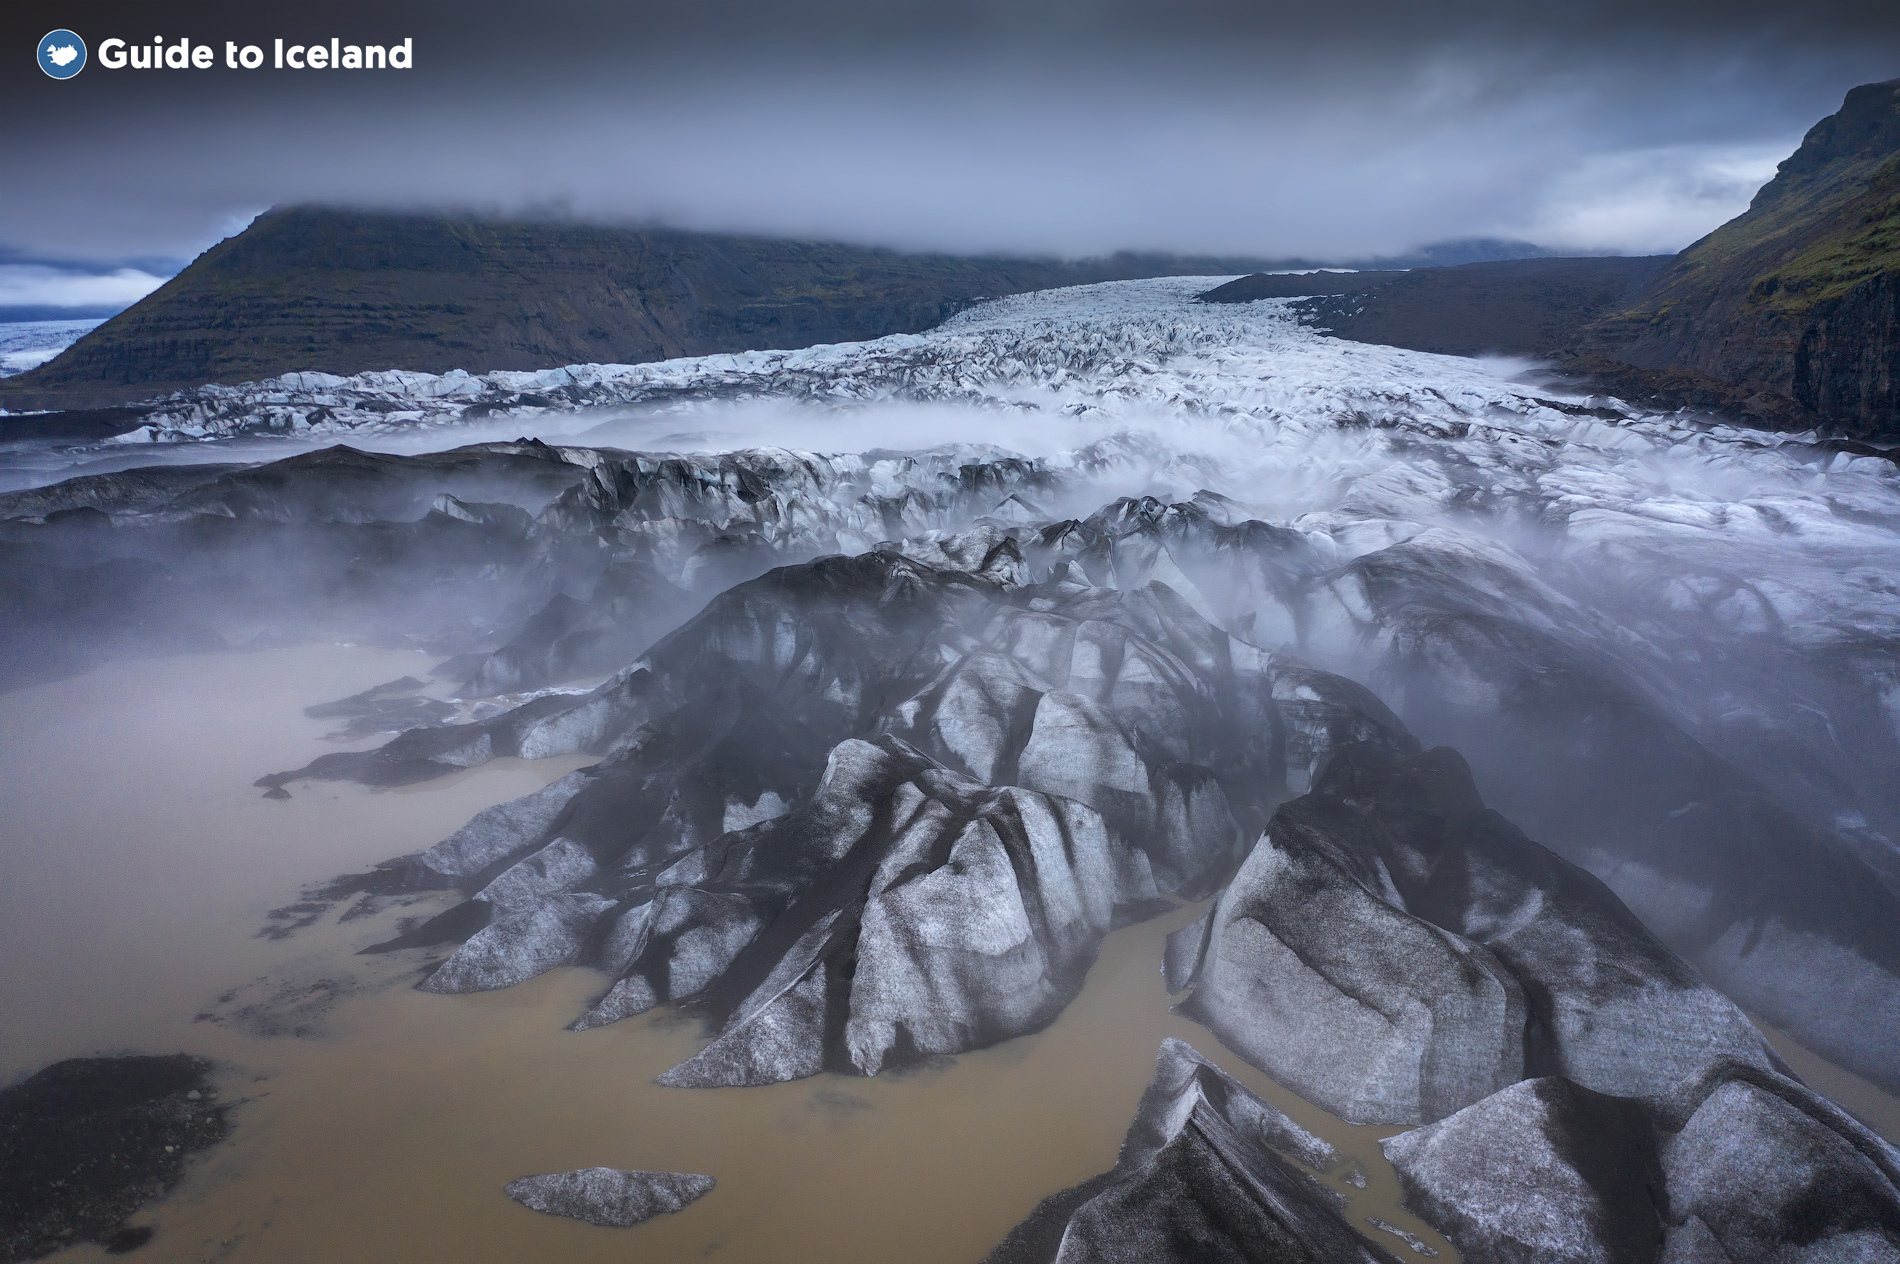 An overhead shot of a glacial tongue on the South Coast of Iceland.